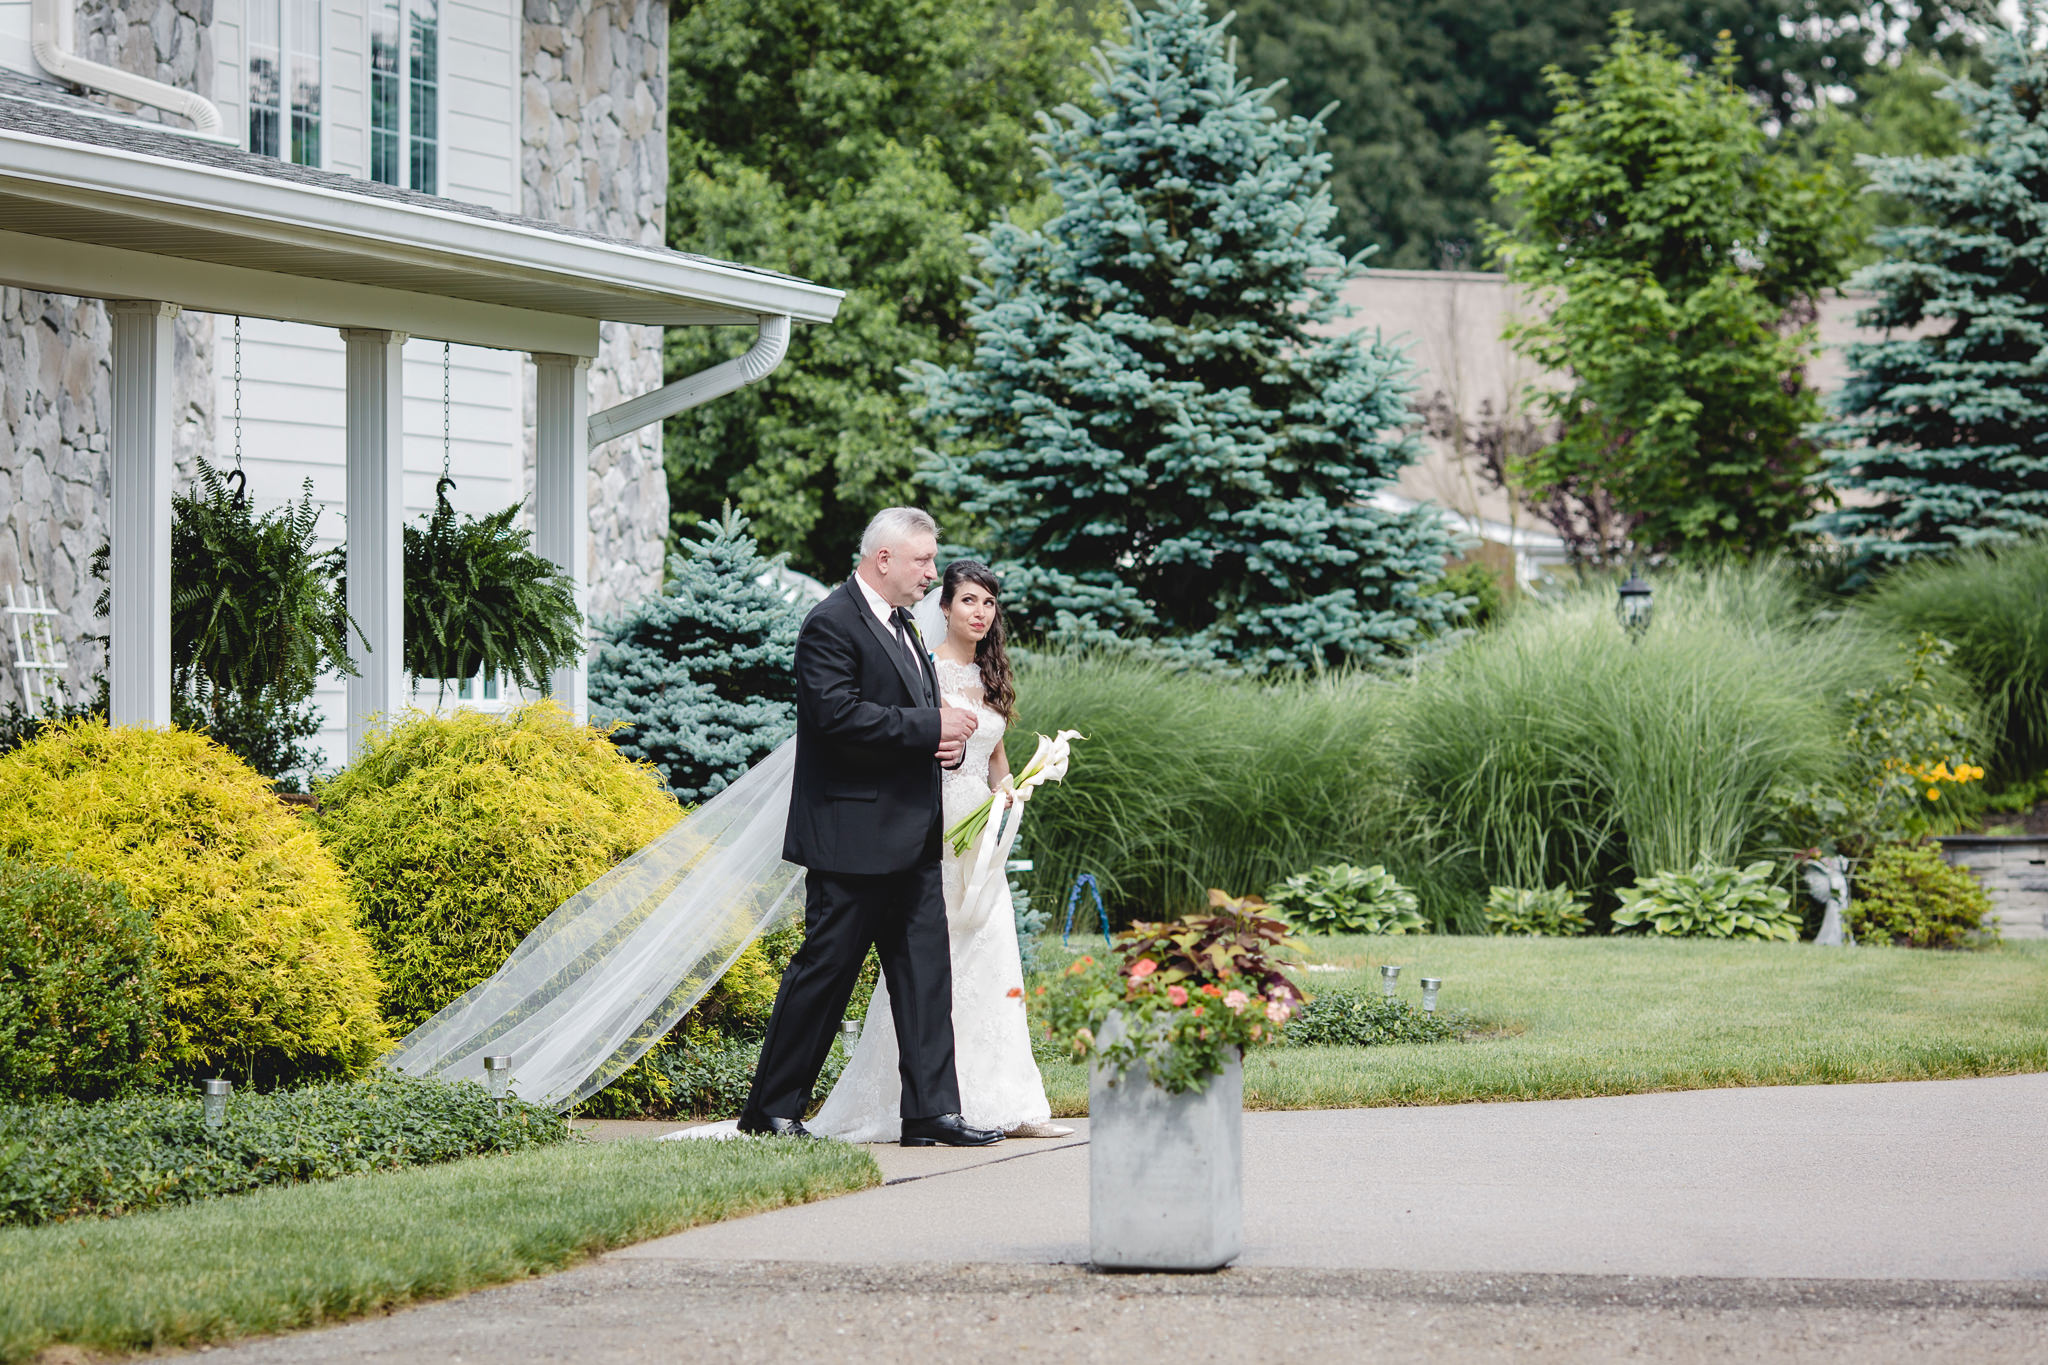 Father of the bride walks his daughter to her wedding ceremony at Greystone Fields